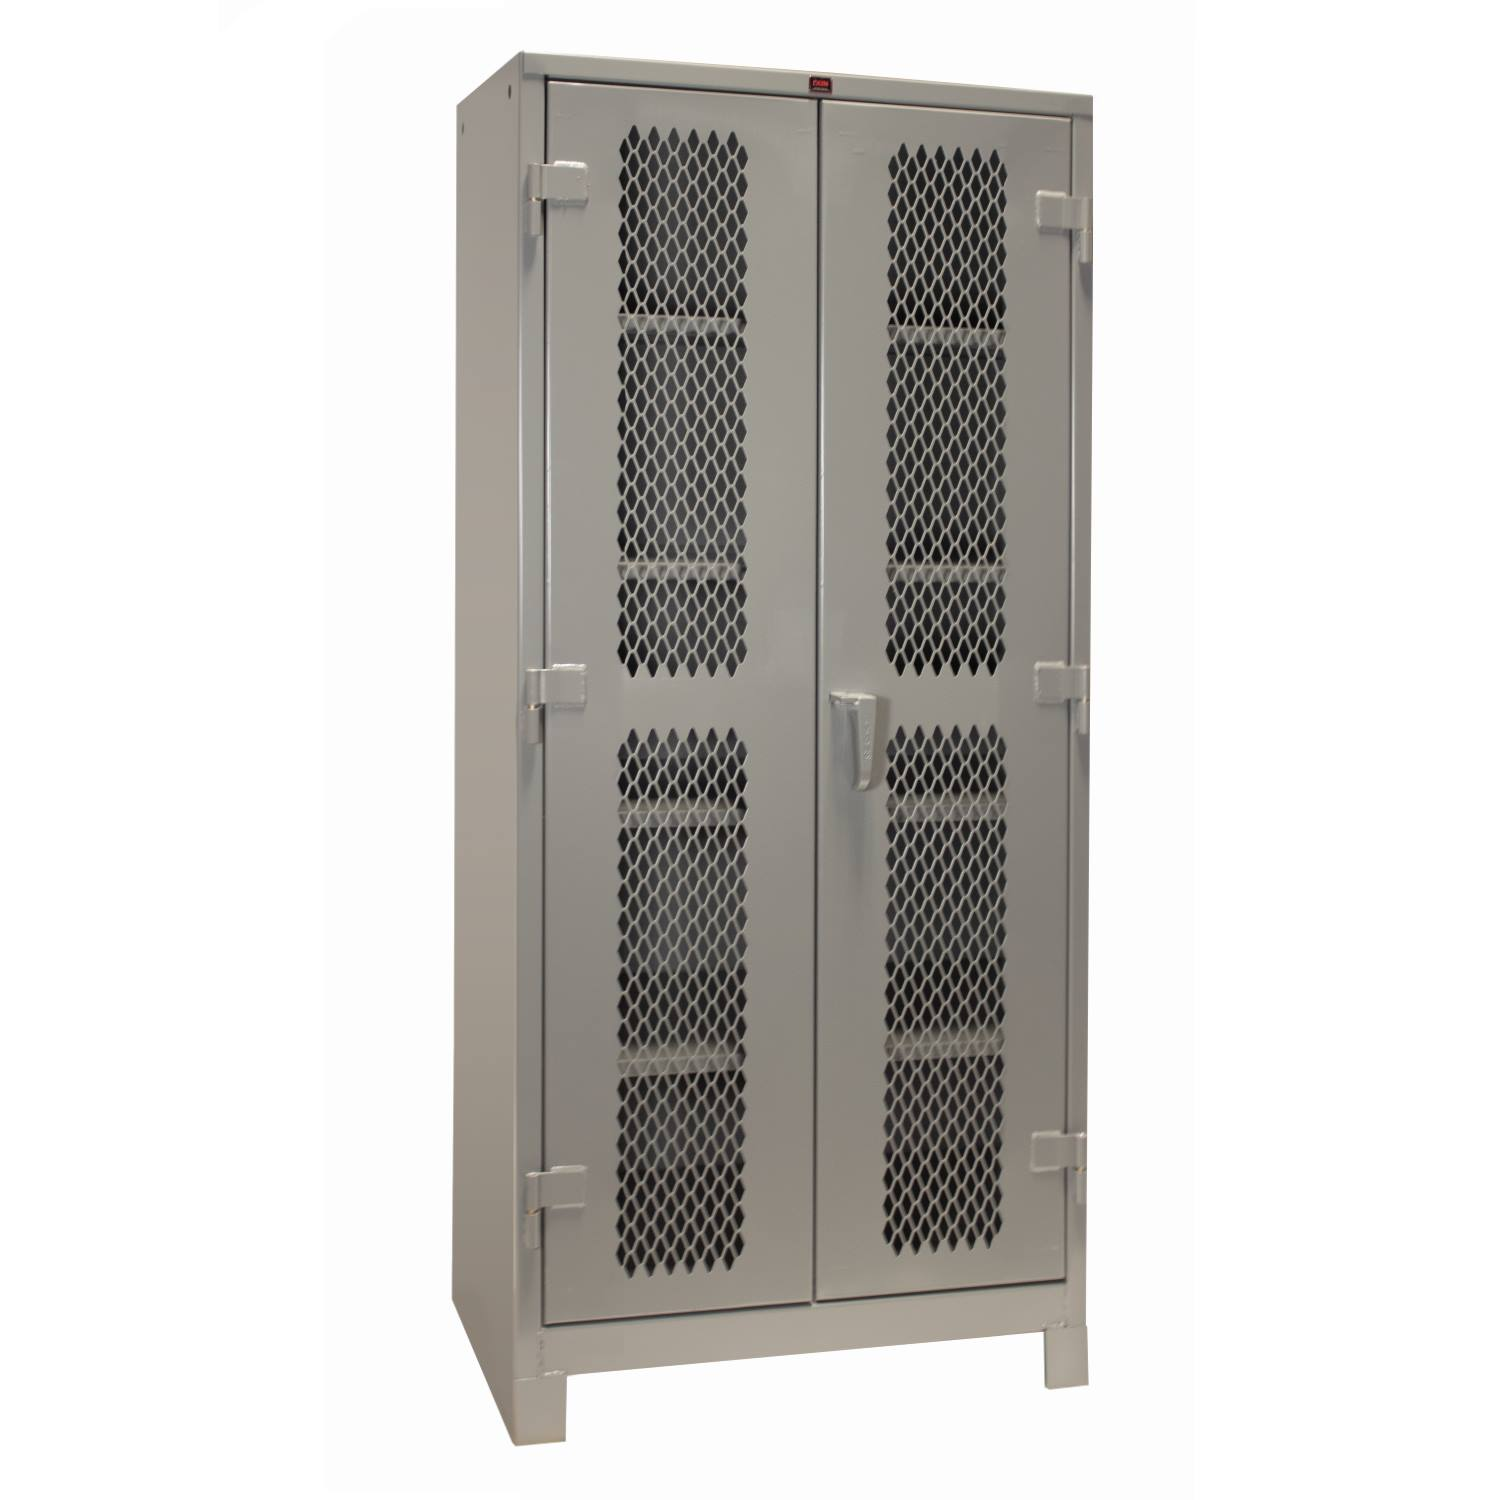 1114 All-Welded Storage Cabinet Diamond Perf Doors 36 x 21 x 82